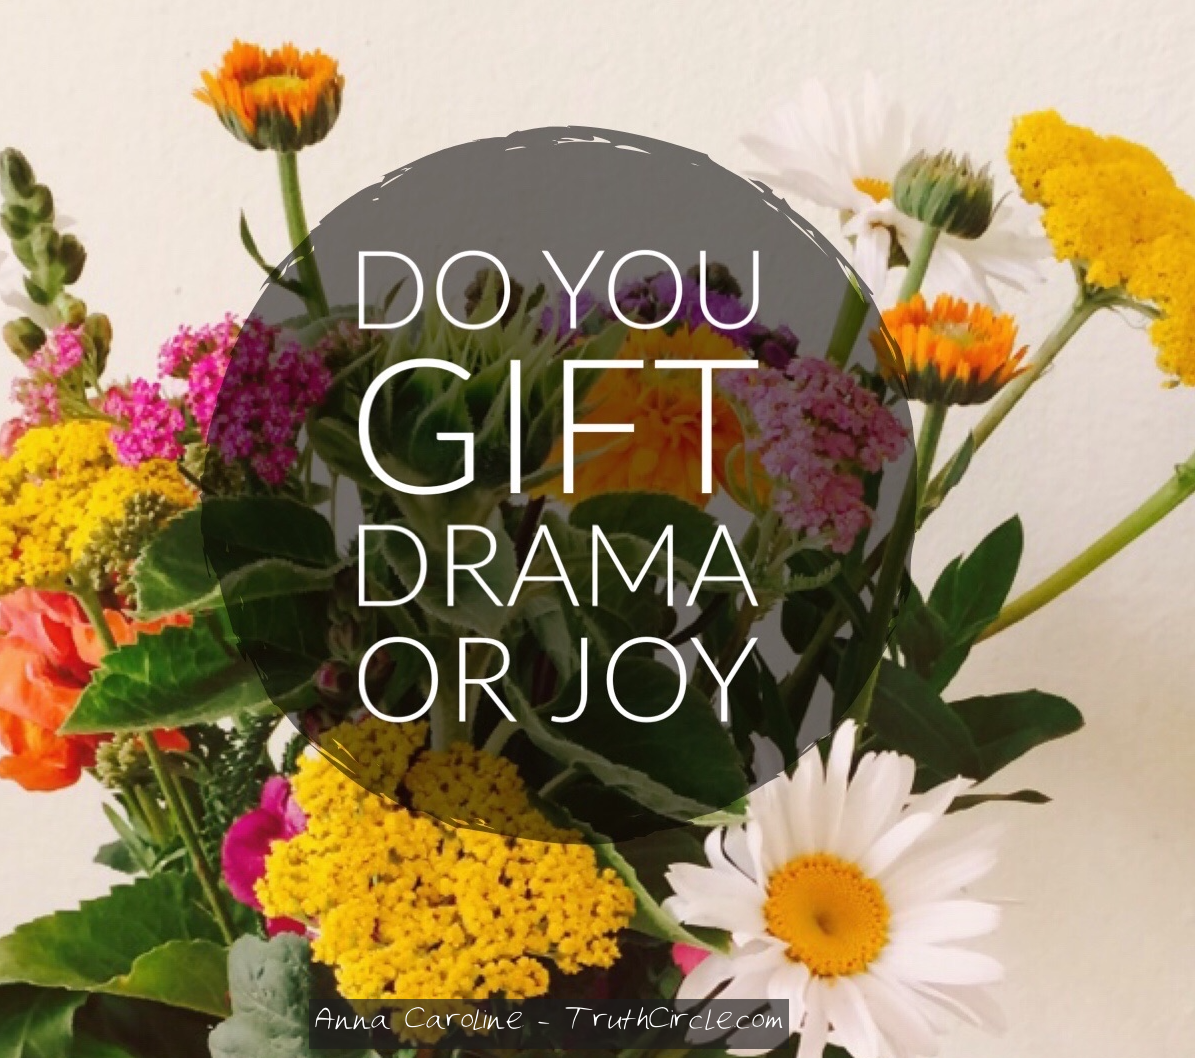 Do you gift Drama or Joy